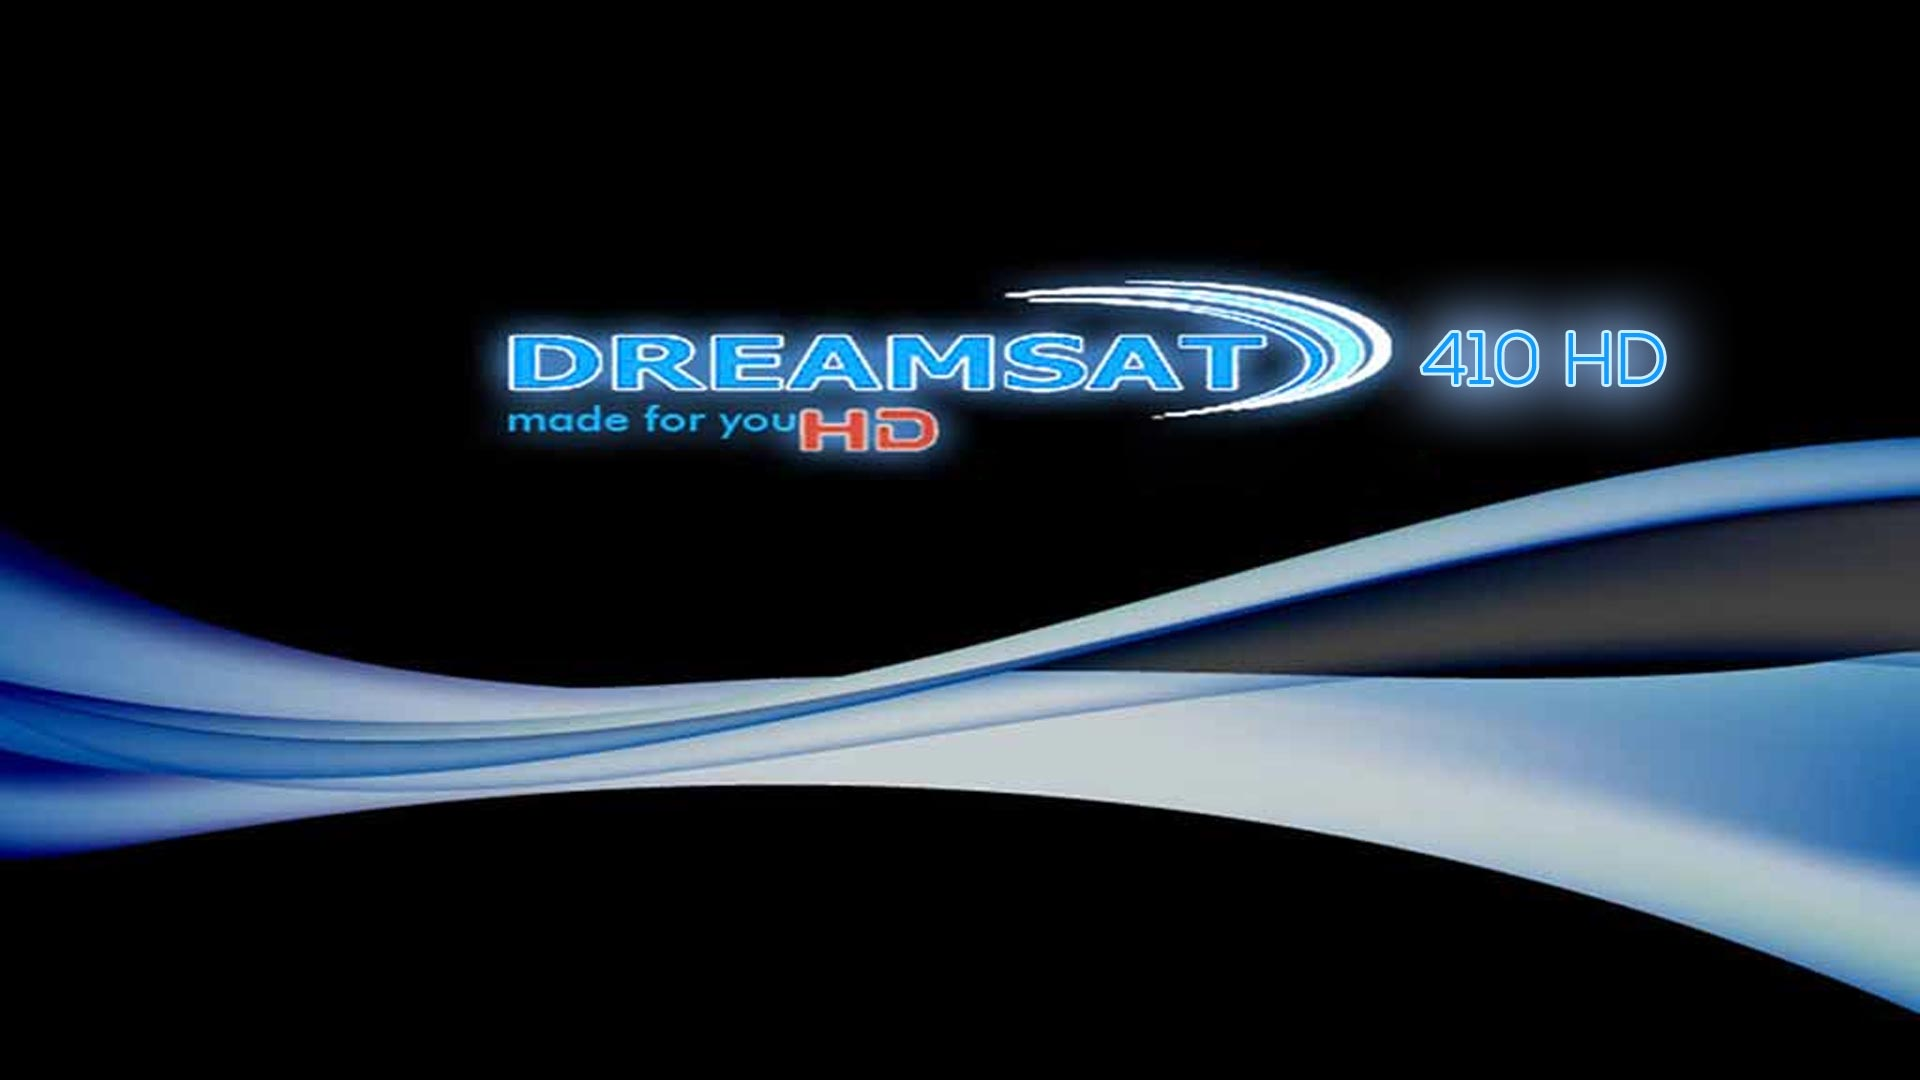 Download Software Dreamsat 410 HD Mini Update Firmware Receiver